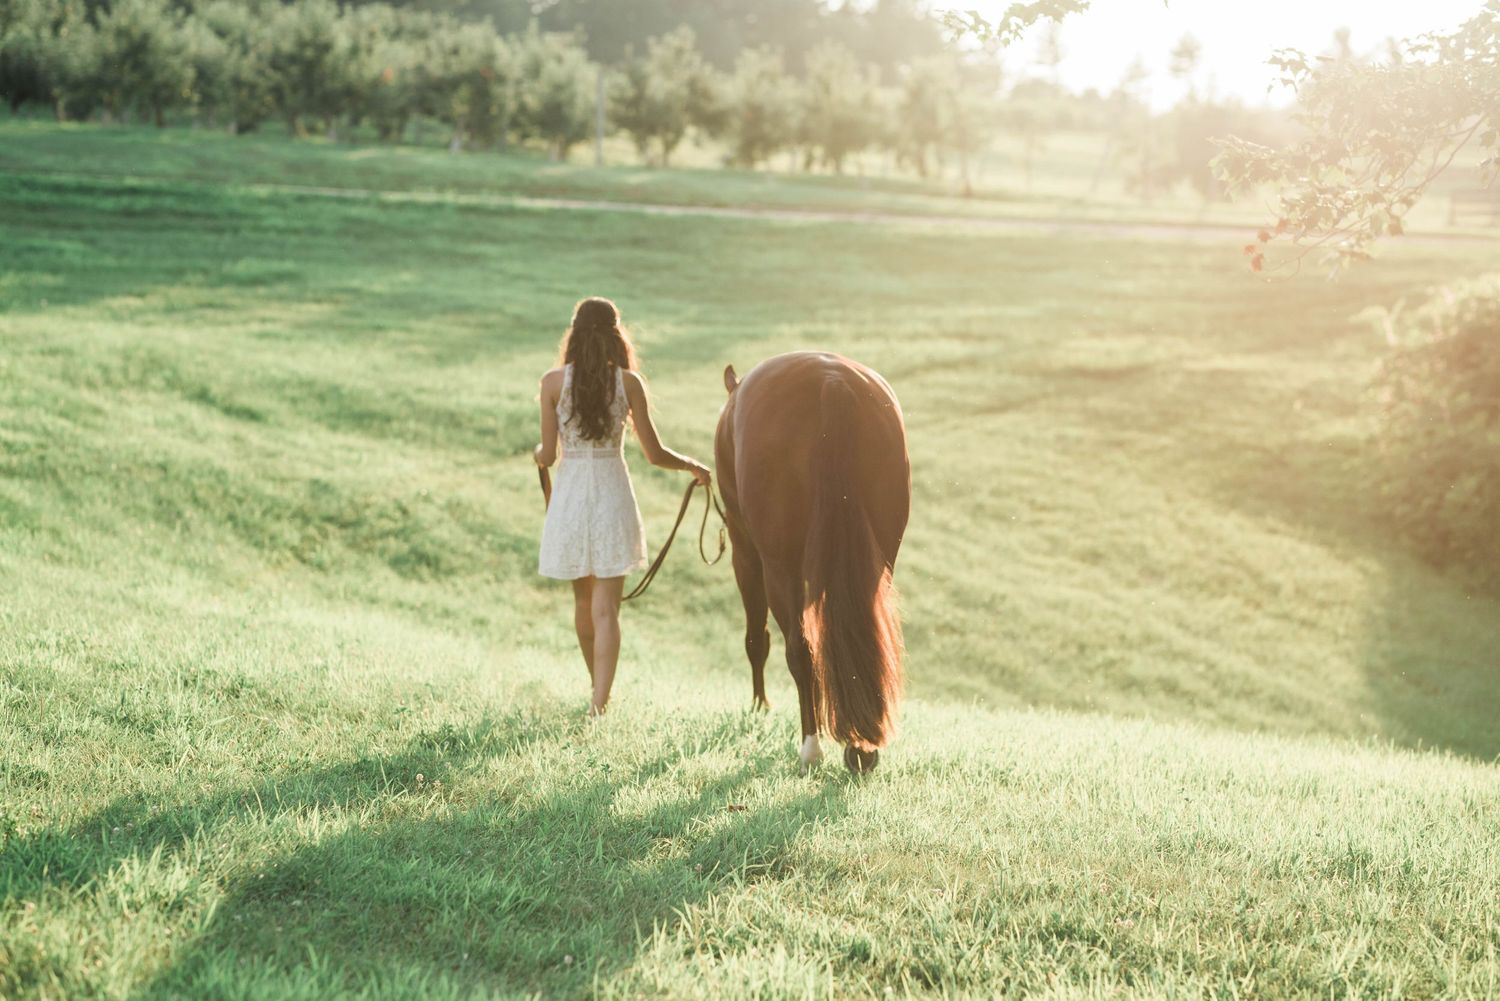 Girl with dark hair in white dress leading brown horse through a field of grass at sunset